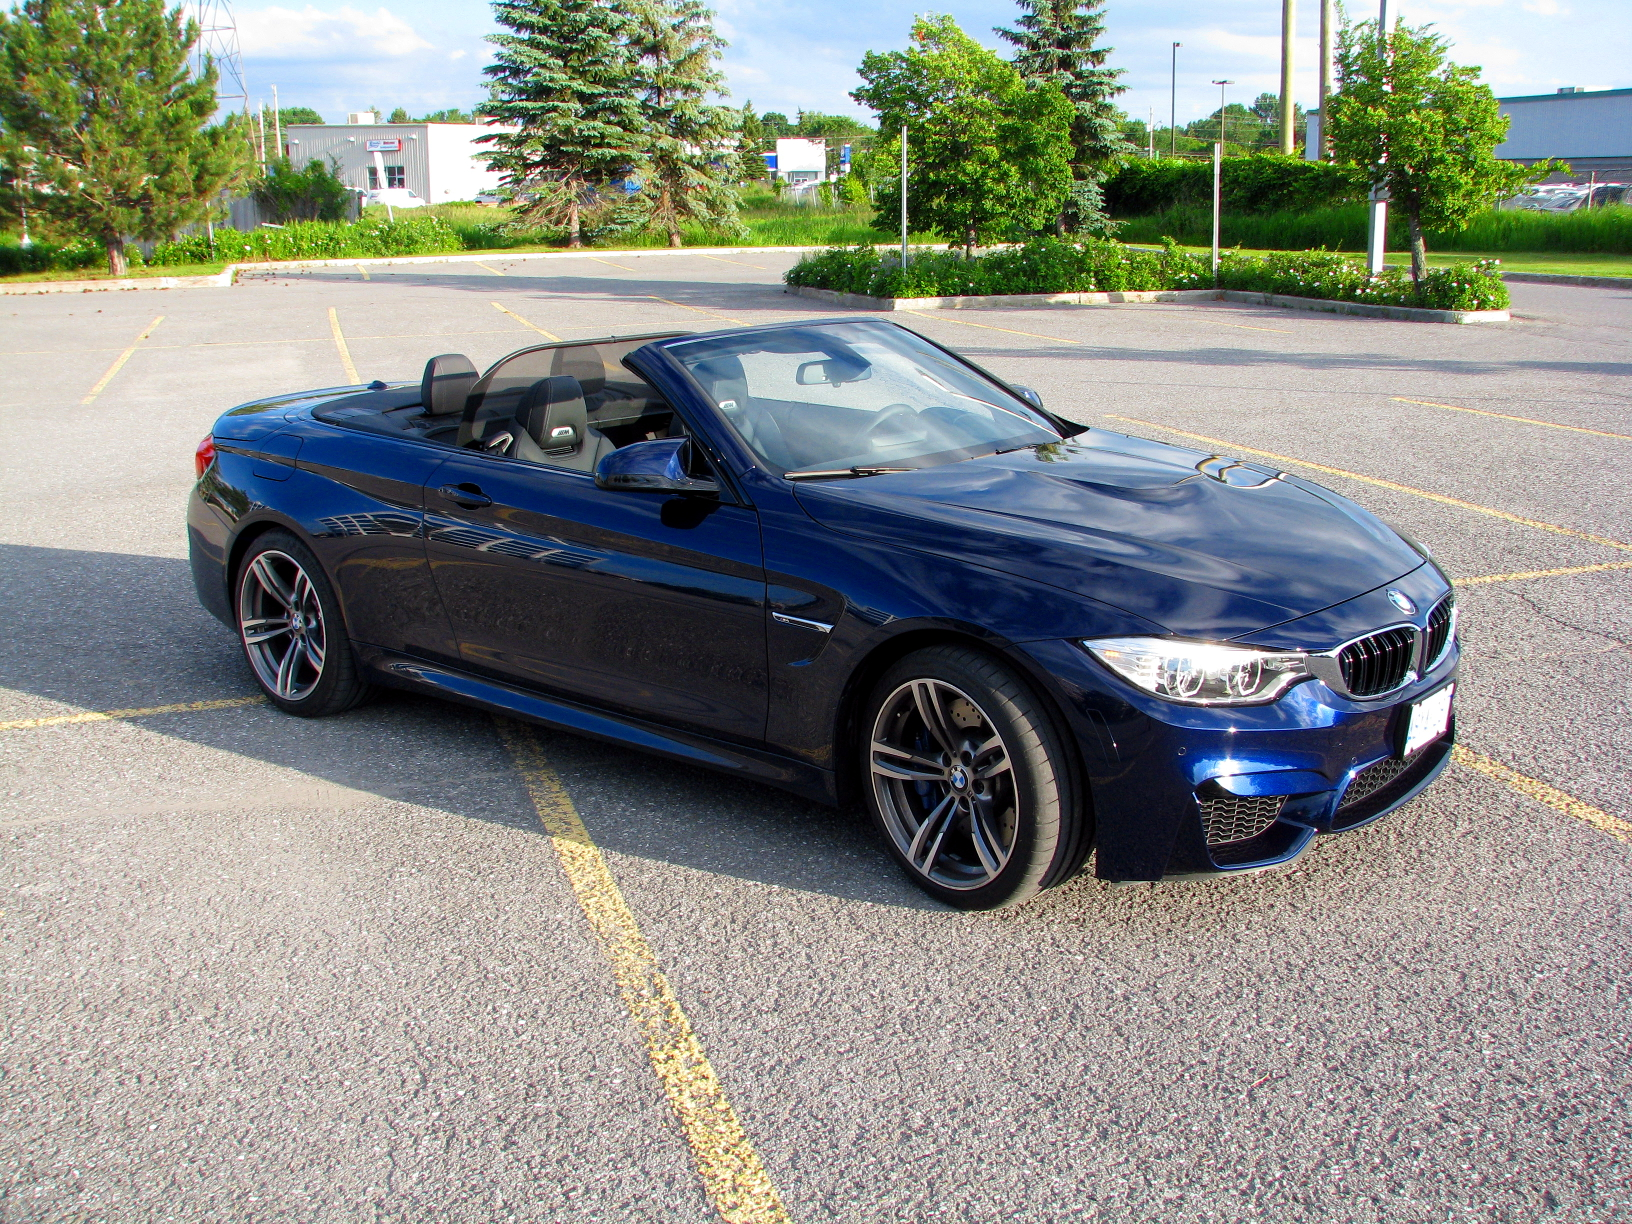 blue convertible bmw m4 - photo #20